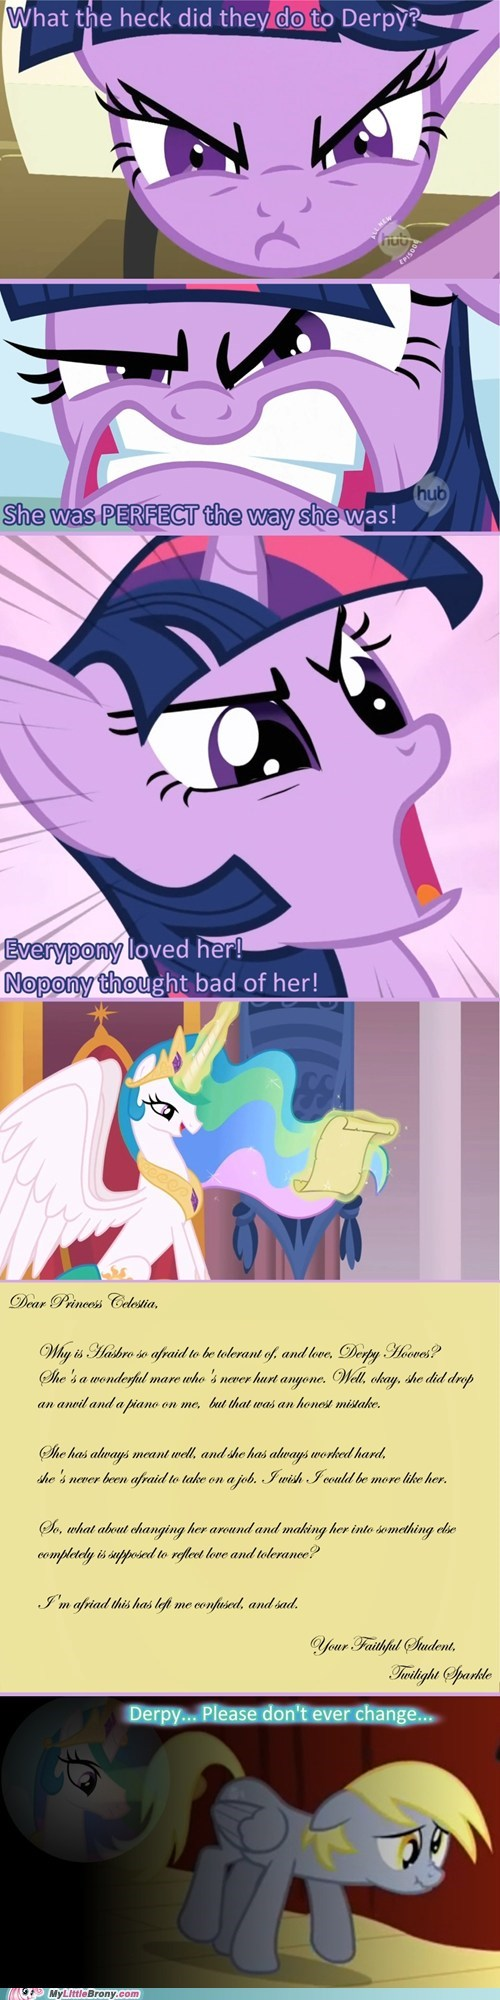 Bronies celestia comics love and tolerate save derpy twilight sparkle - 5905305856